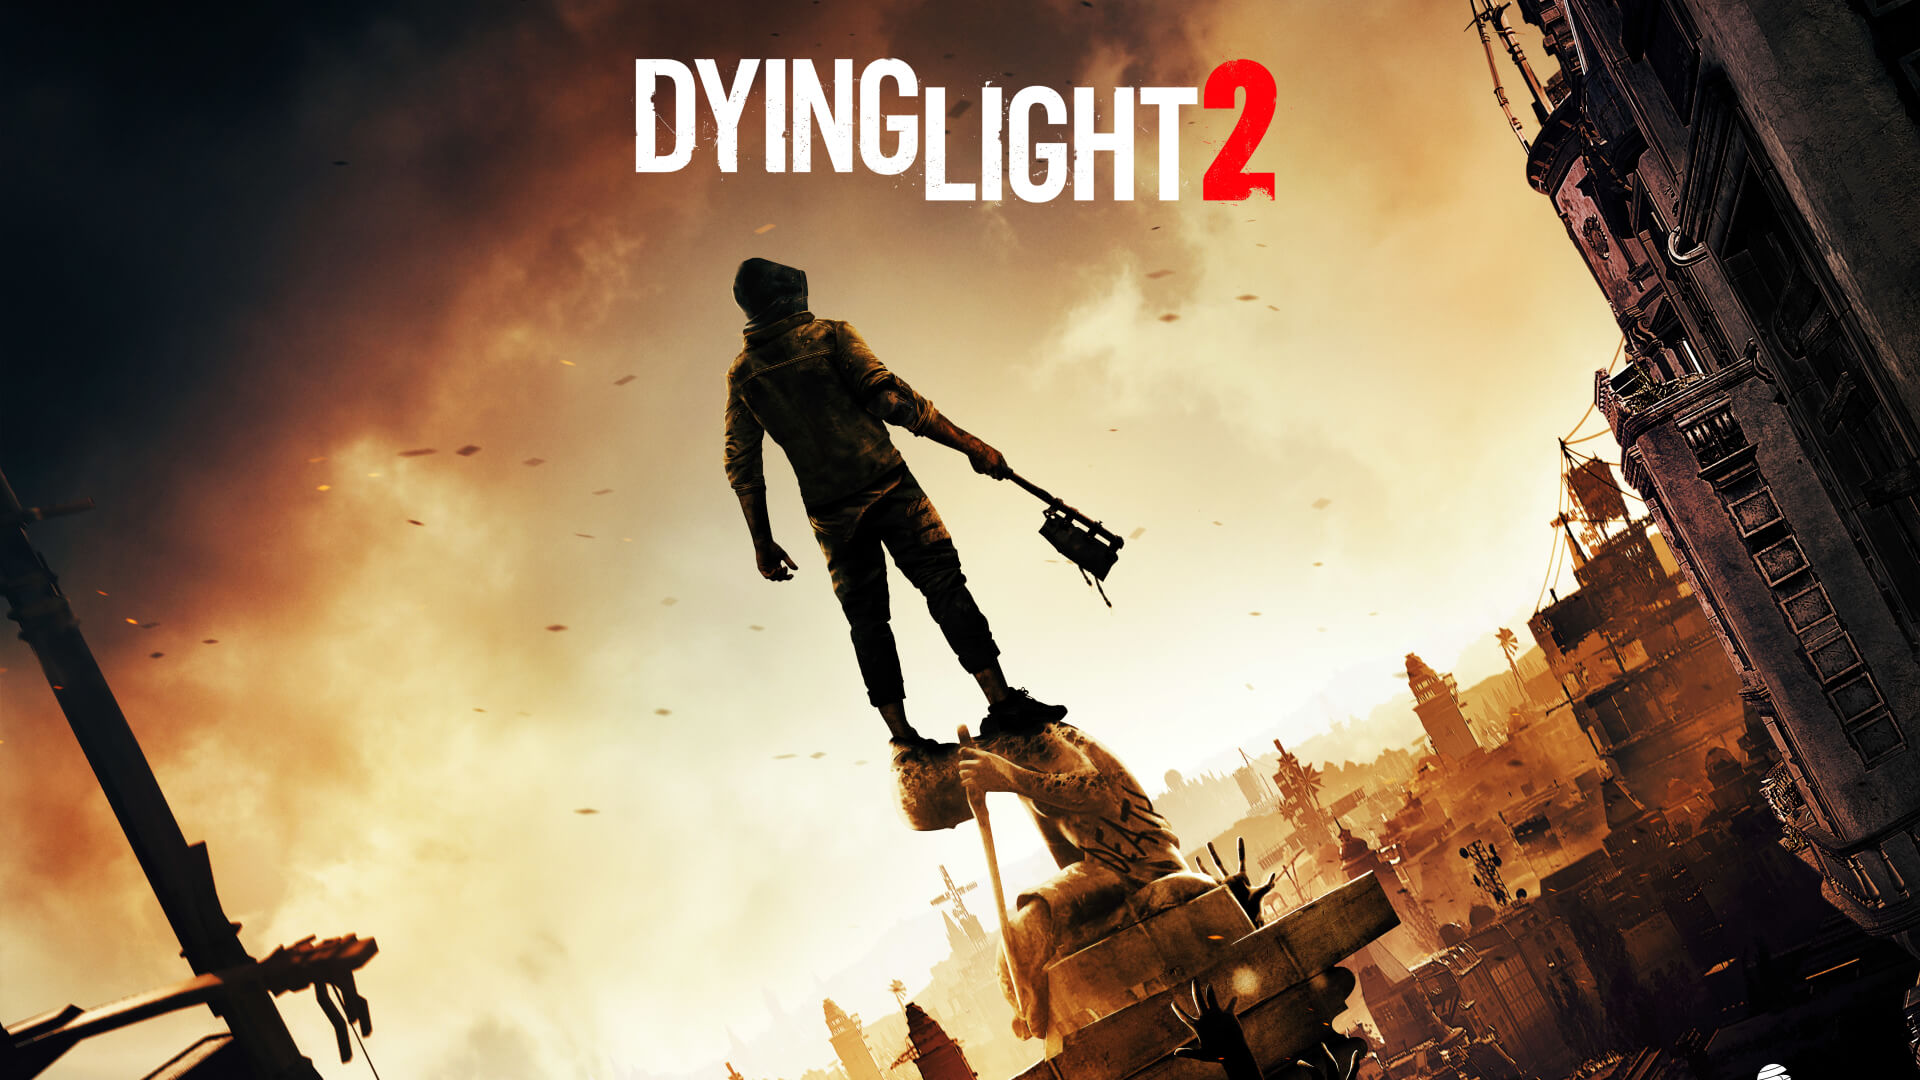 Dying Light 2 Collector's Edition Leaked by Czech Retailer